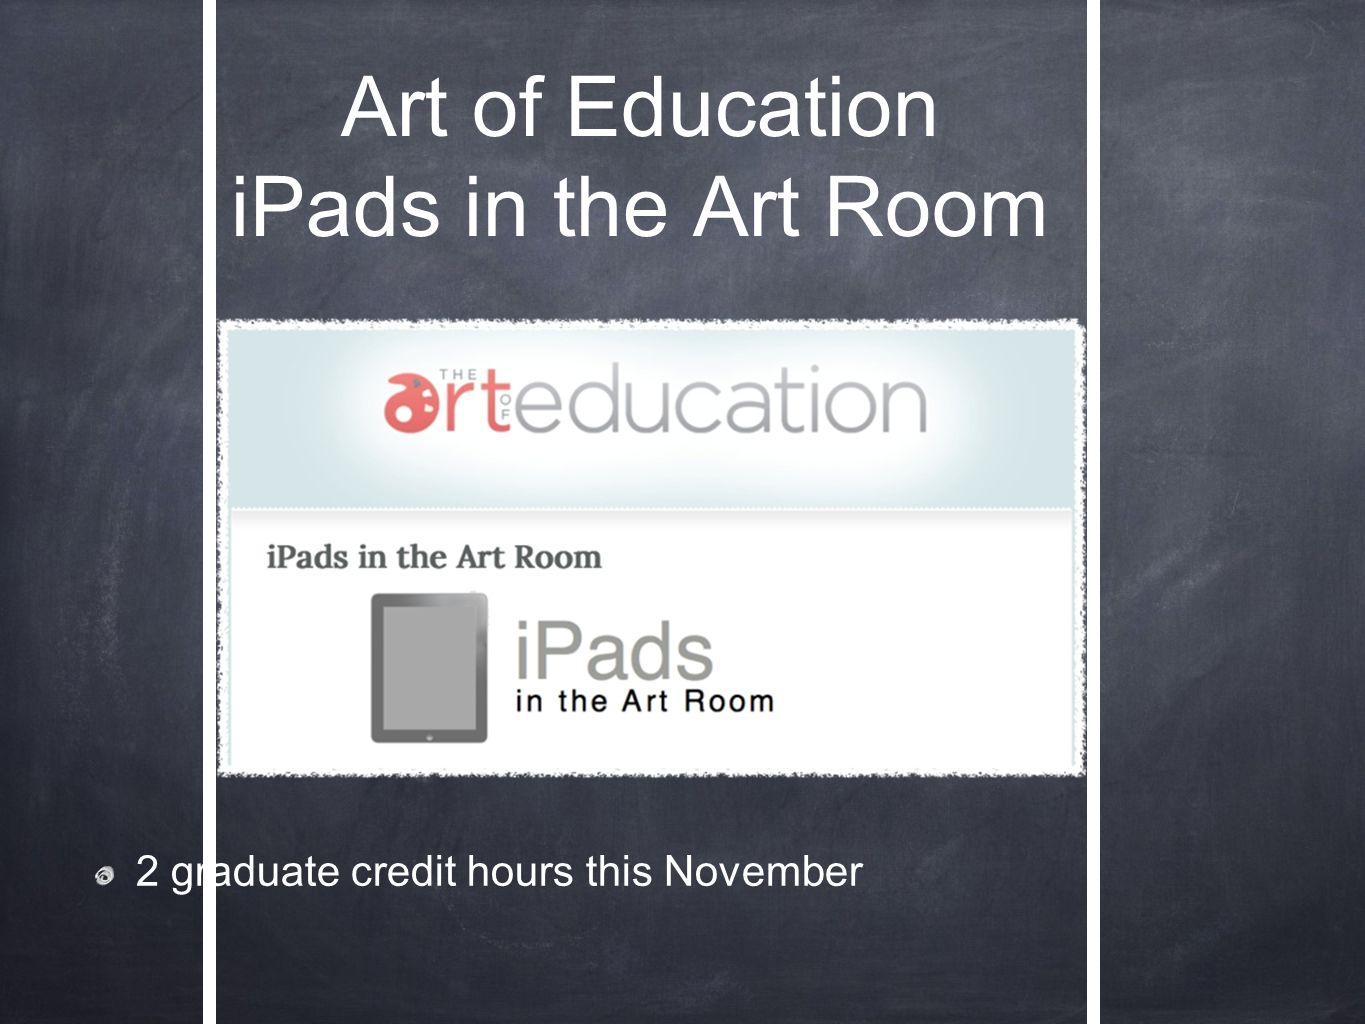 Art of Education iPads in the Art Room 2 graduate credit hours this November